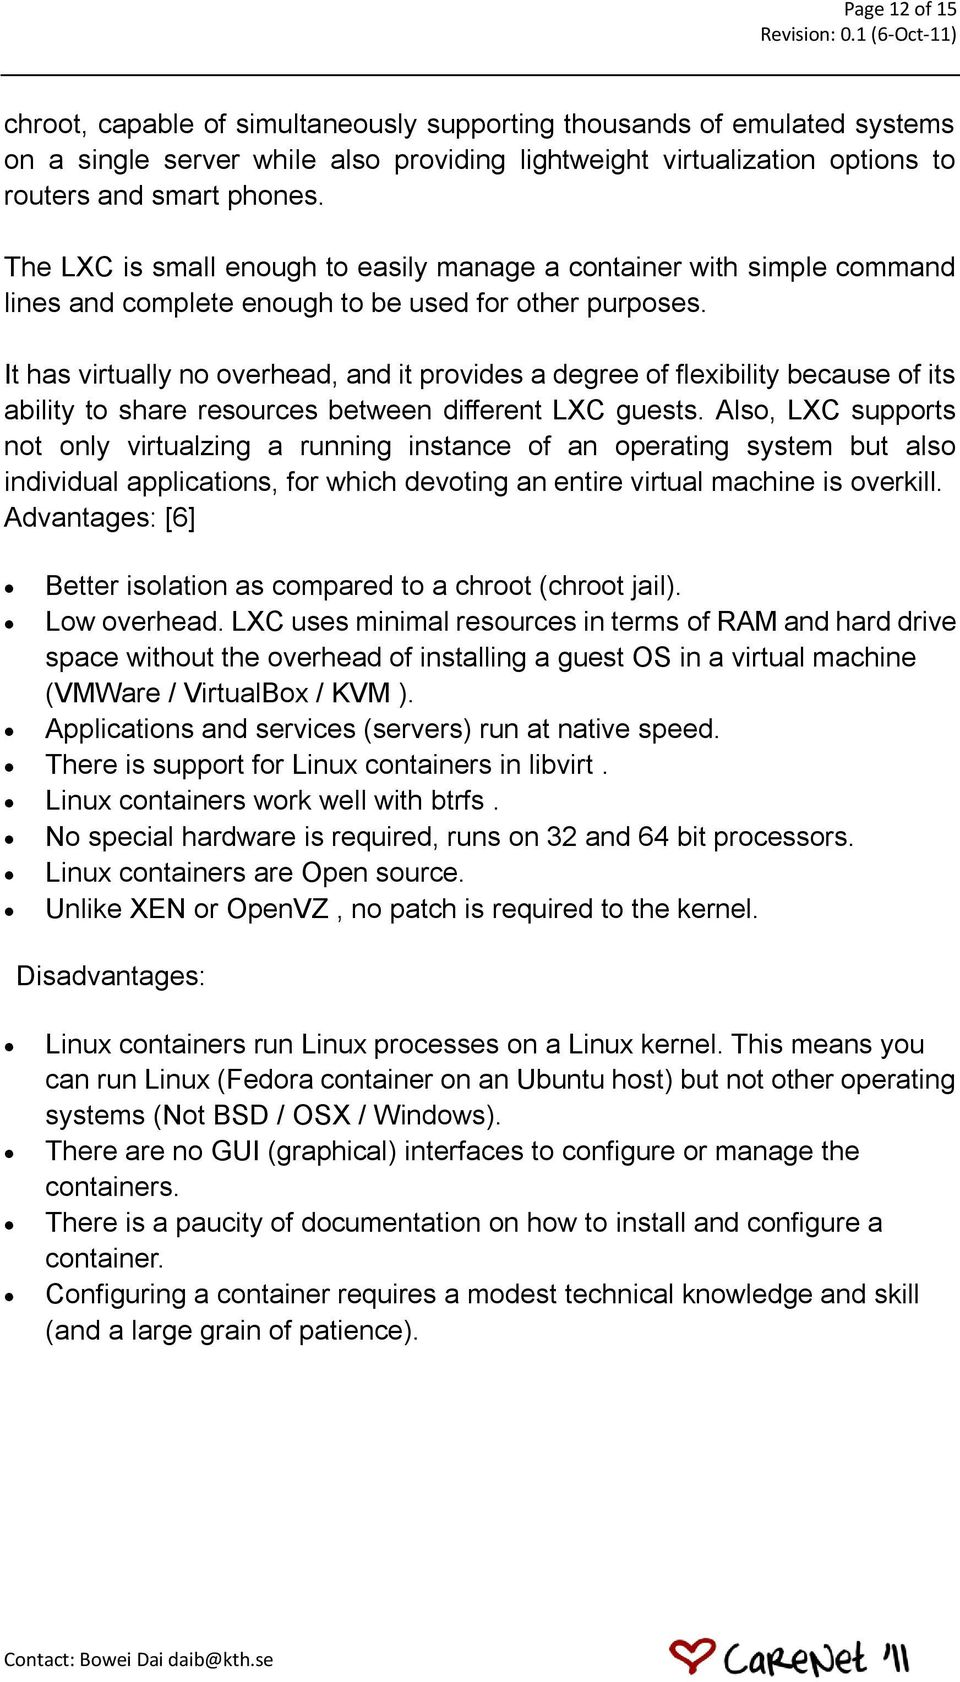 Virtualization analysis - PDF